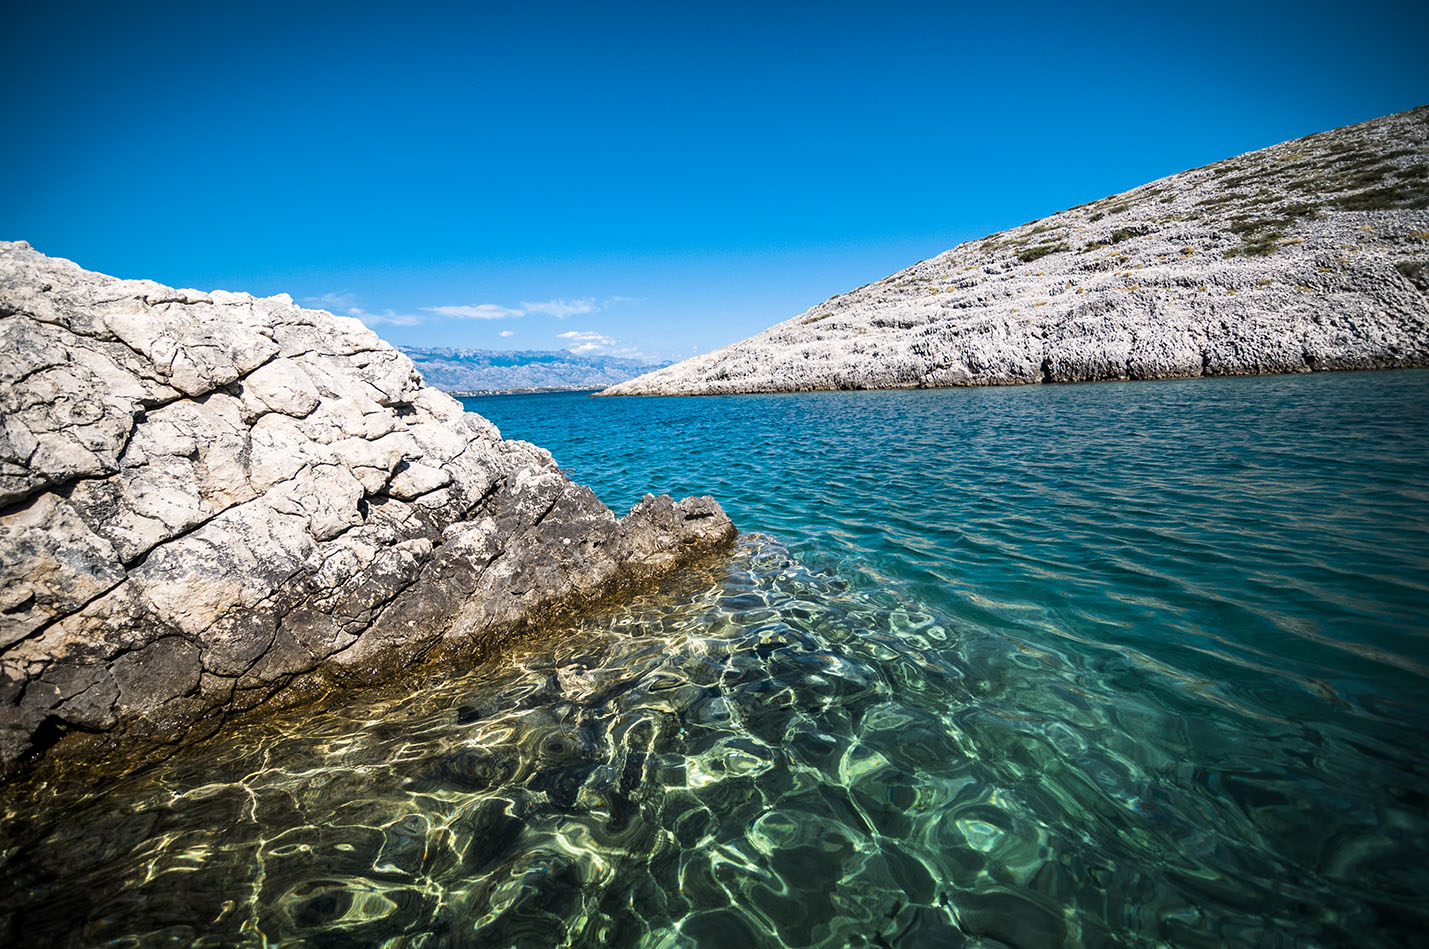 Adriatic Sea from a peninsula in VRSI, Croatia by WETkitchen